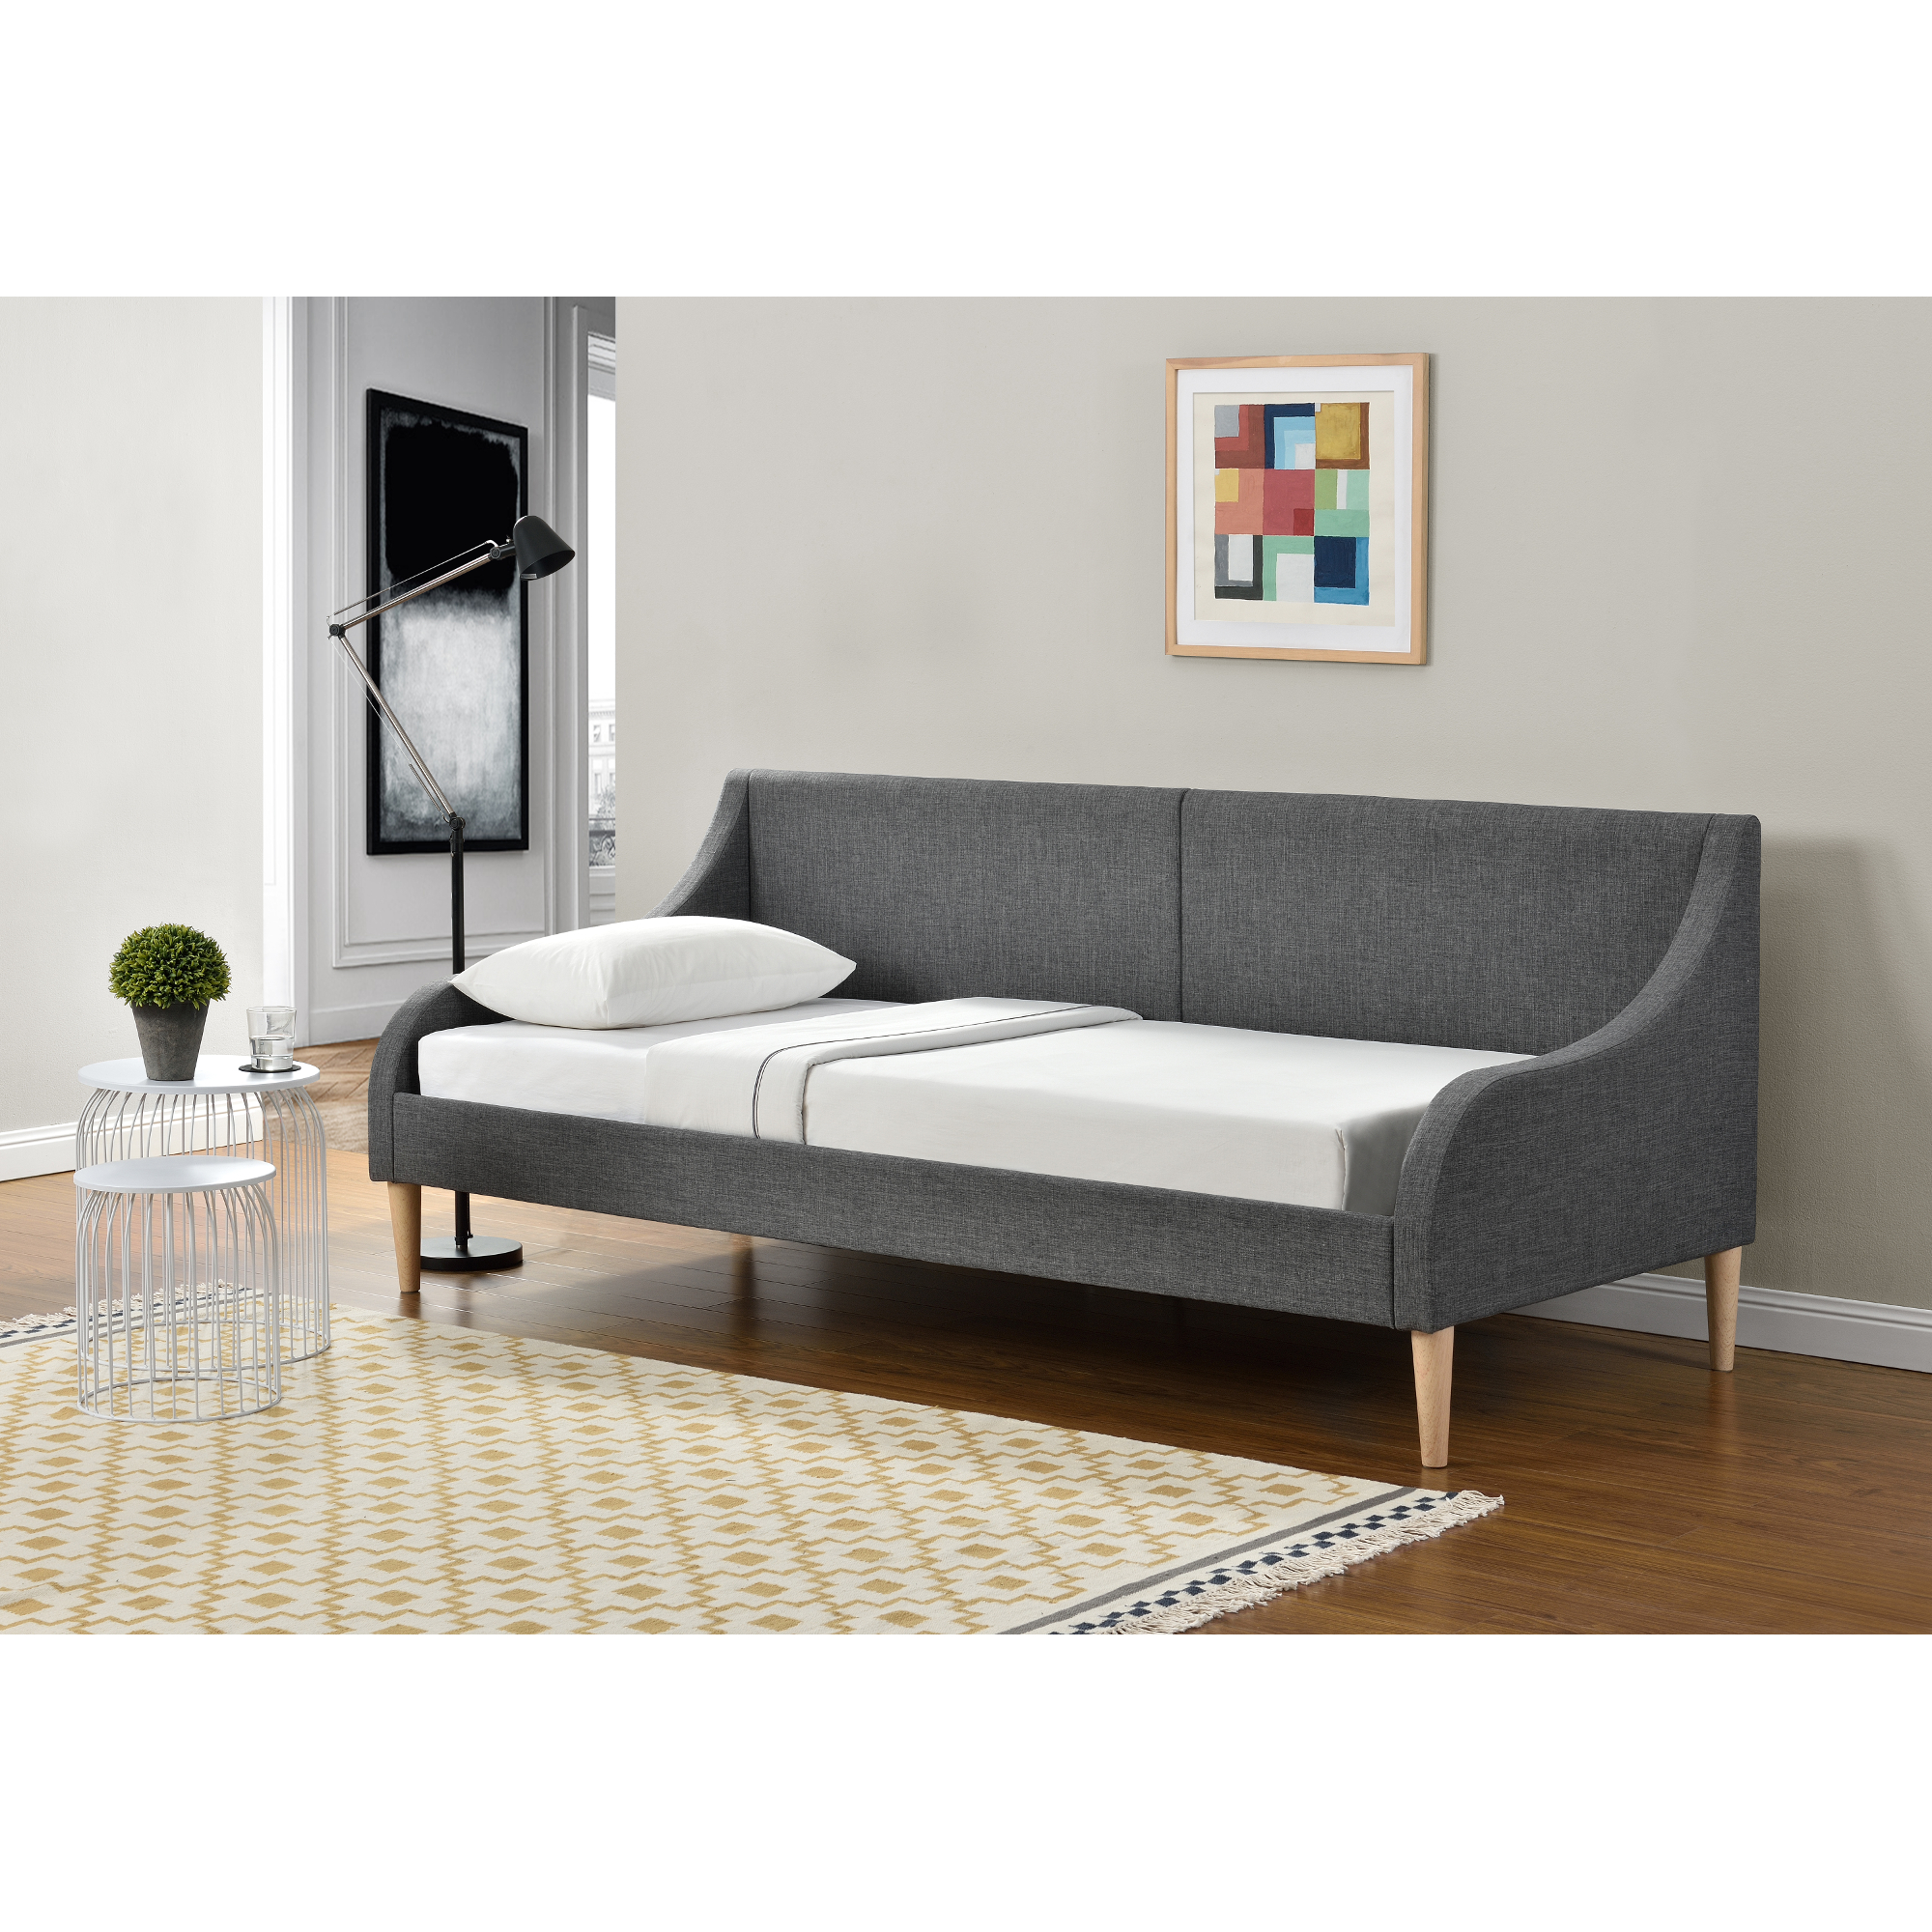 en casa day bed with mattress 90 x 200 cm sofa bed fabric bed frame ebay. Black Bedroom Furniture Sets. Home Design Ideas